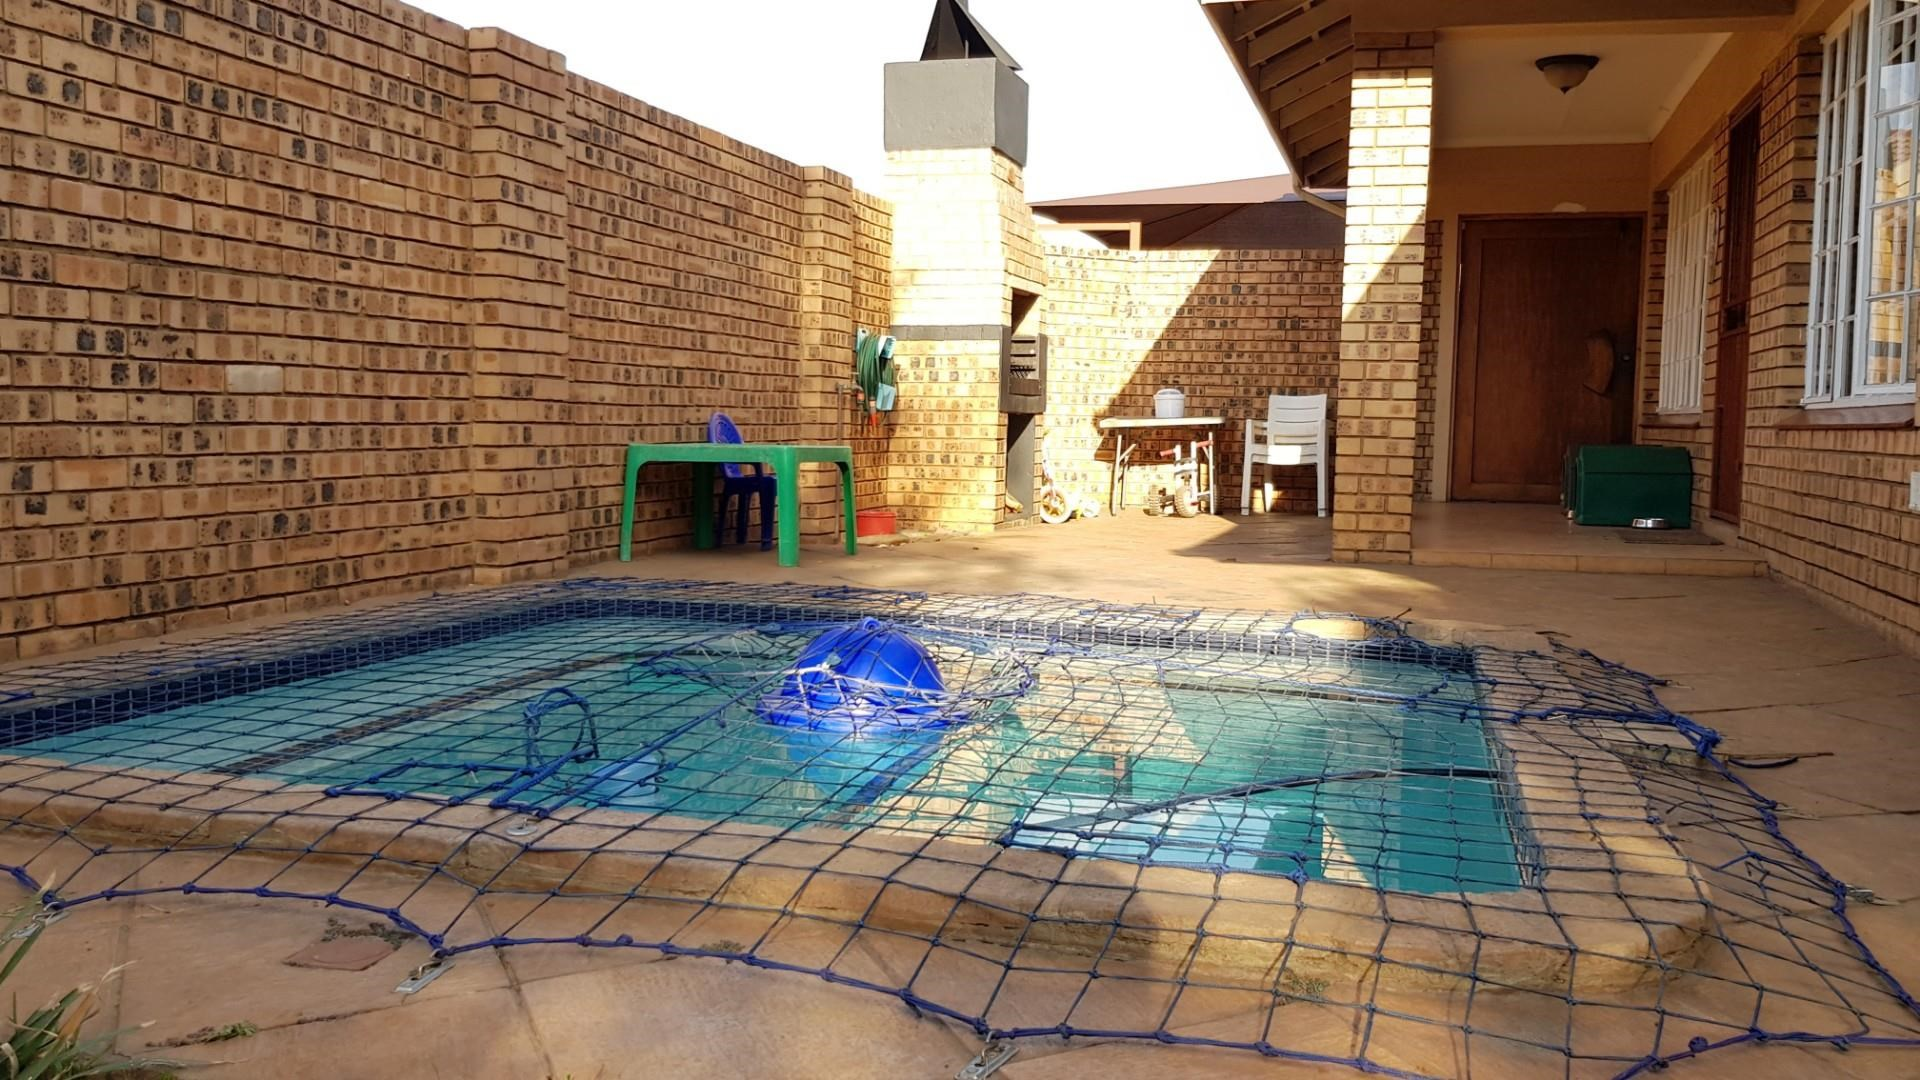 3 Bedroom Townhouse for Sale in Middelburg South